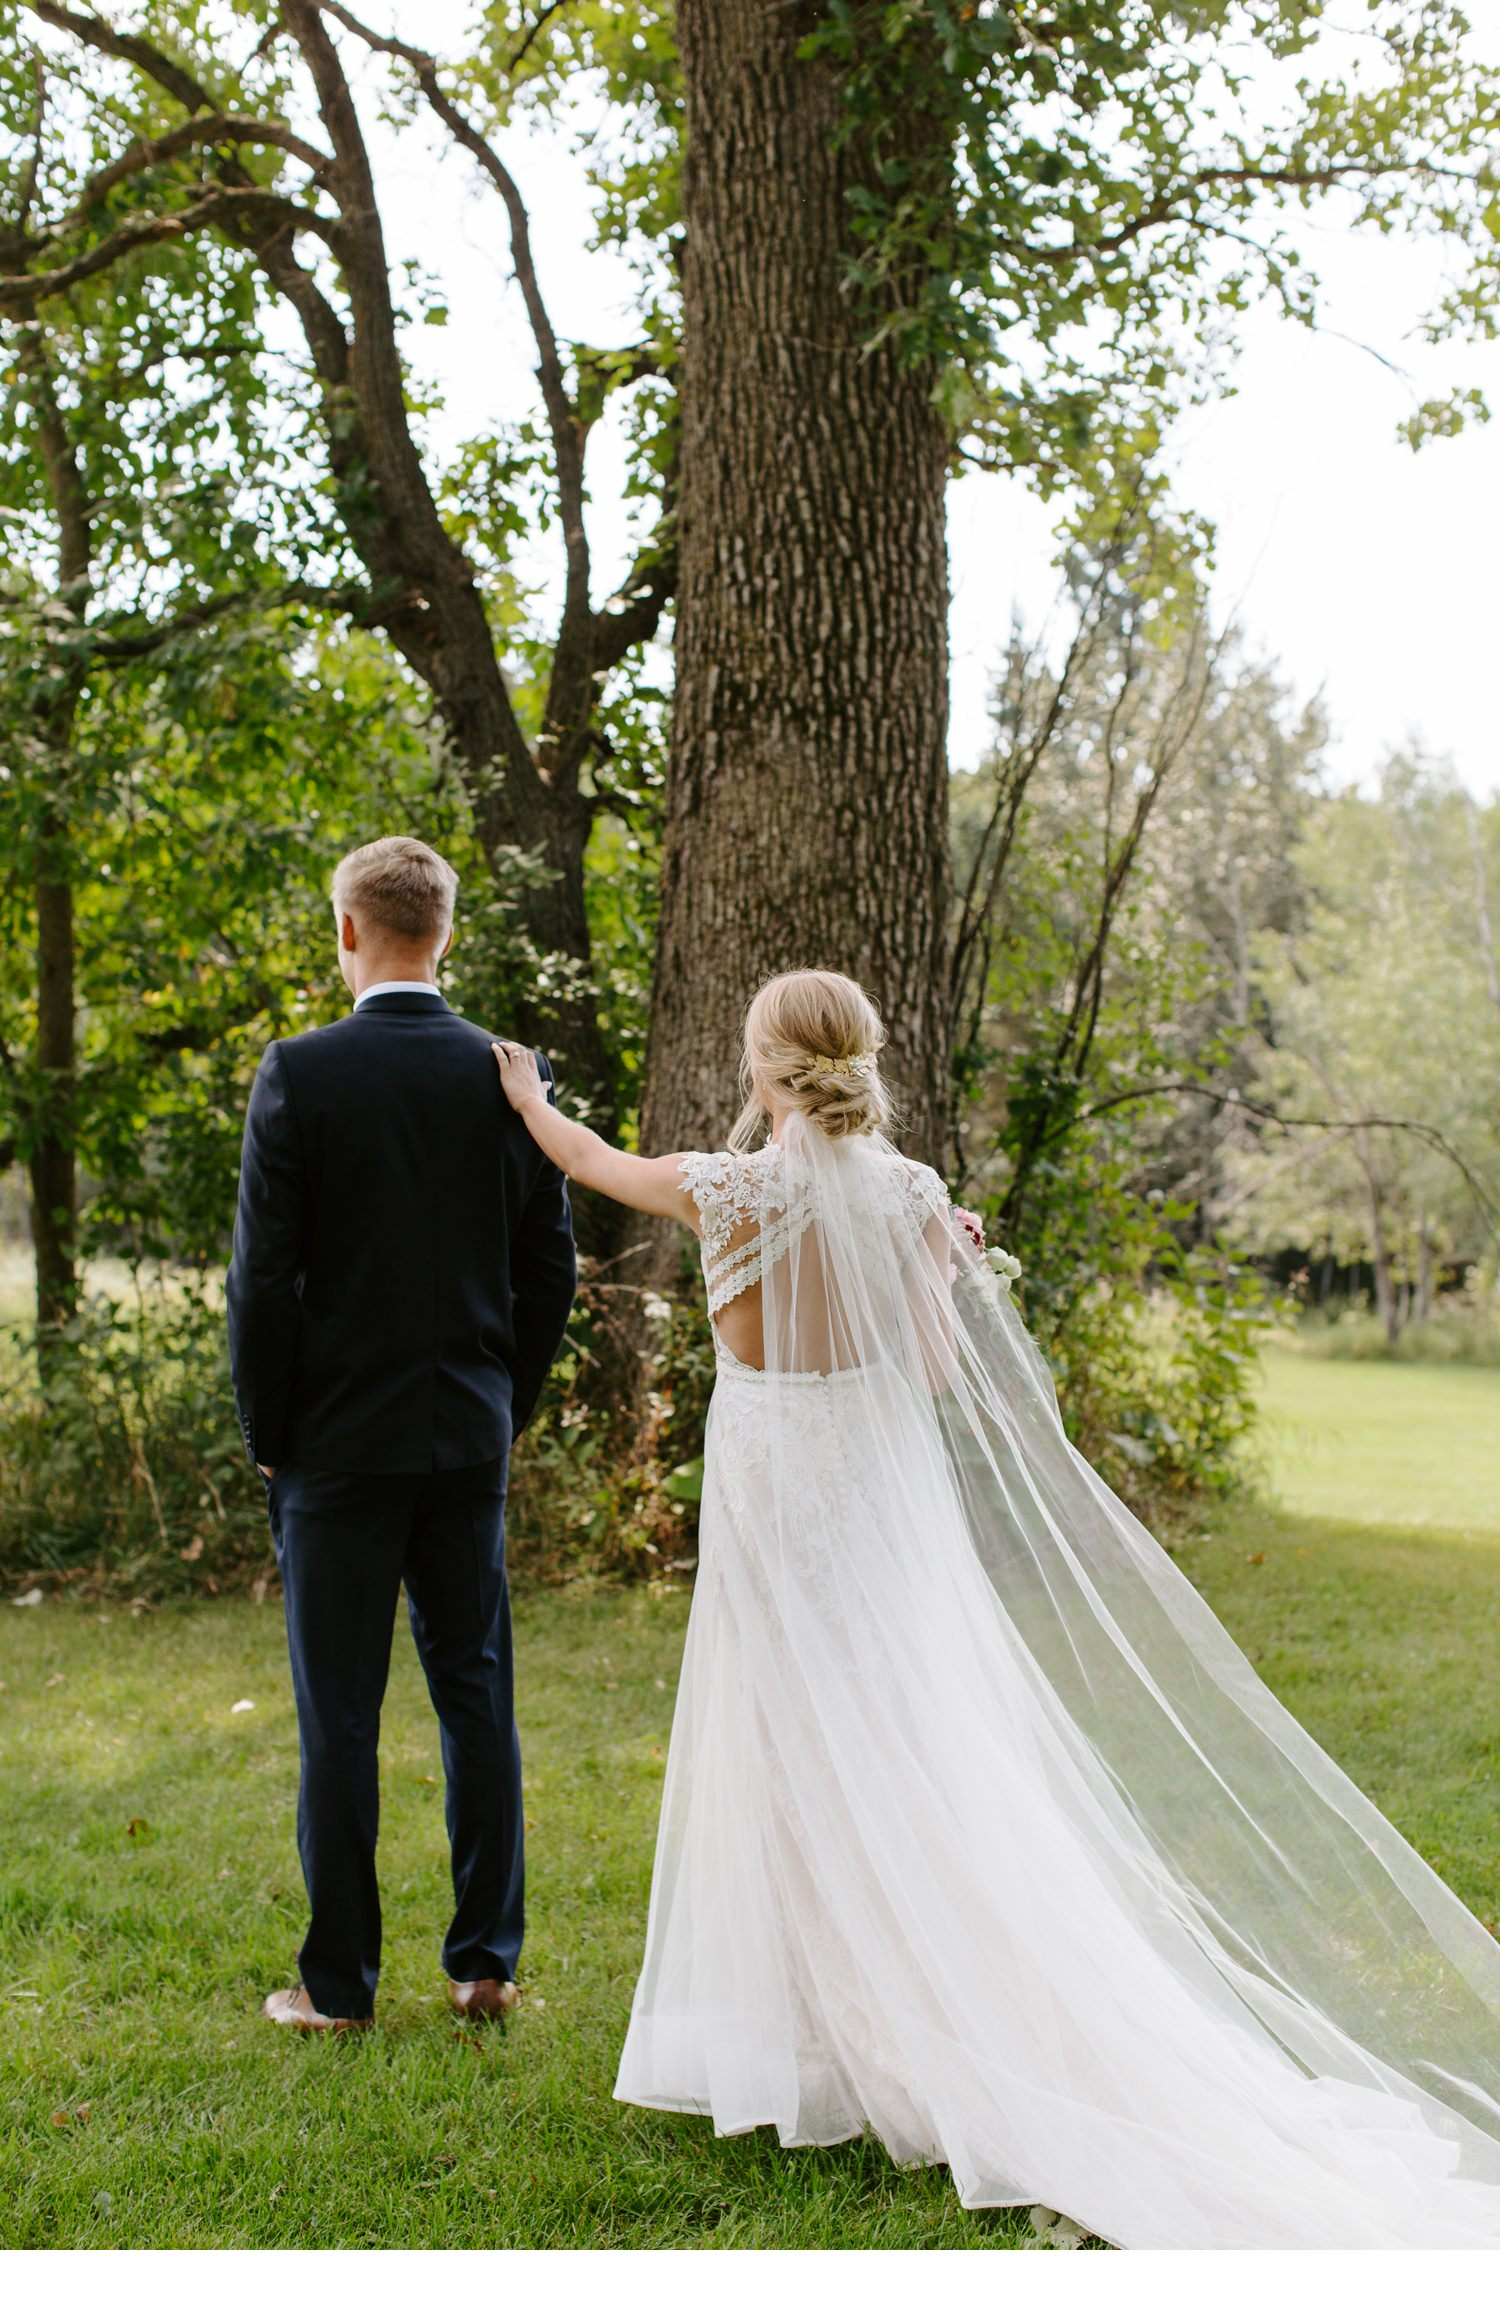 minnesota-wedding-dara-and-chad-14.jpg